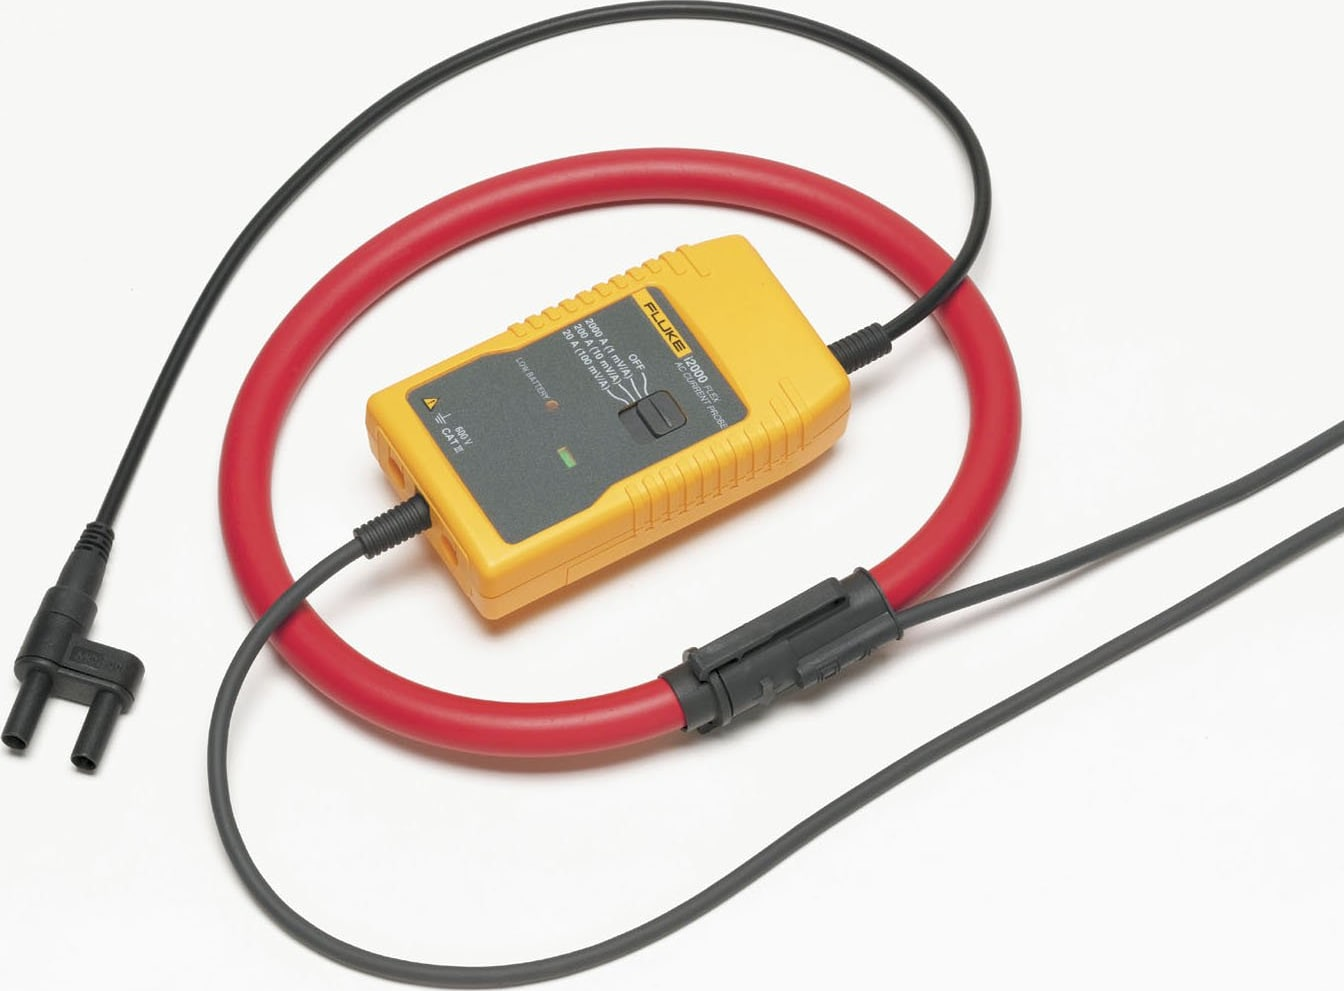 Fluke I2000 FLEX Current Clamp Adaptor